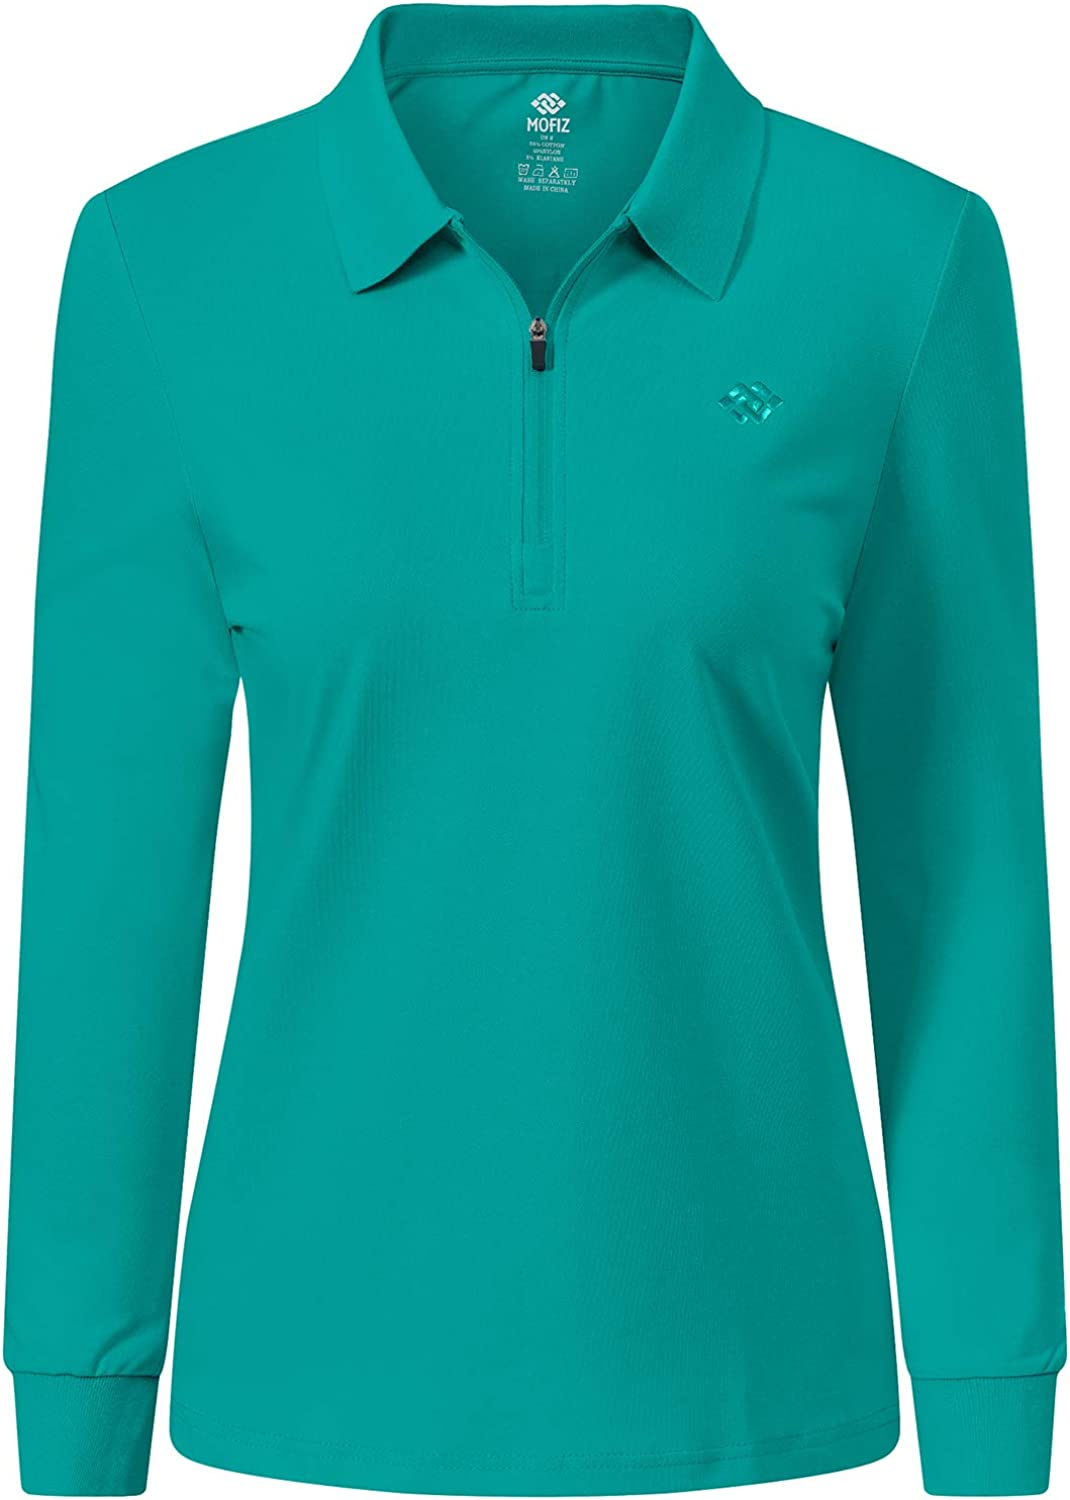 JINSHI Women's Golf Topics on TV Polo Shirt Long Active Sleeves Year-end gift Zip Sport Up